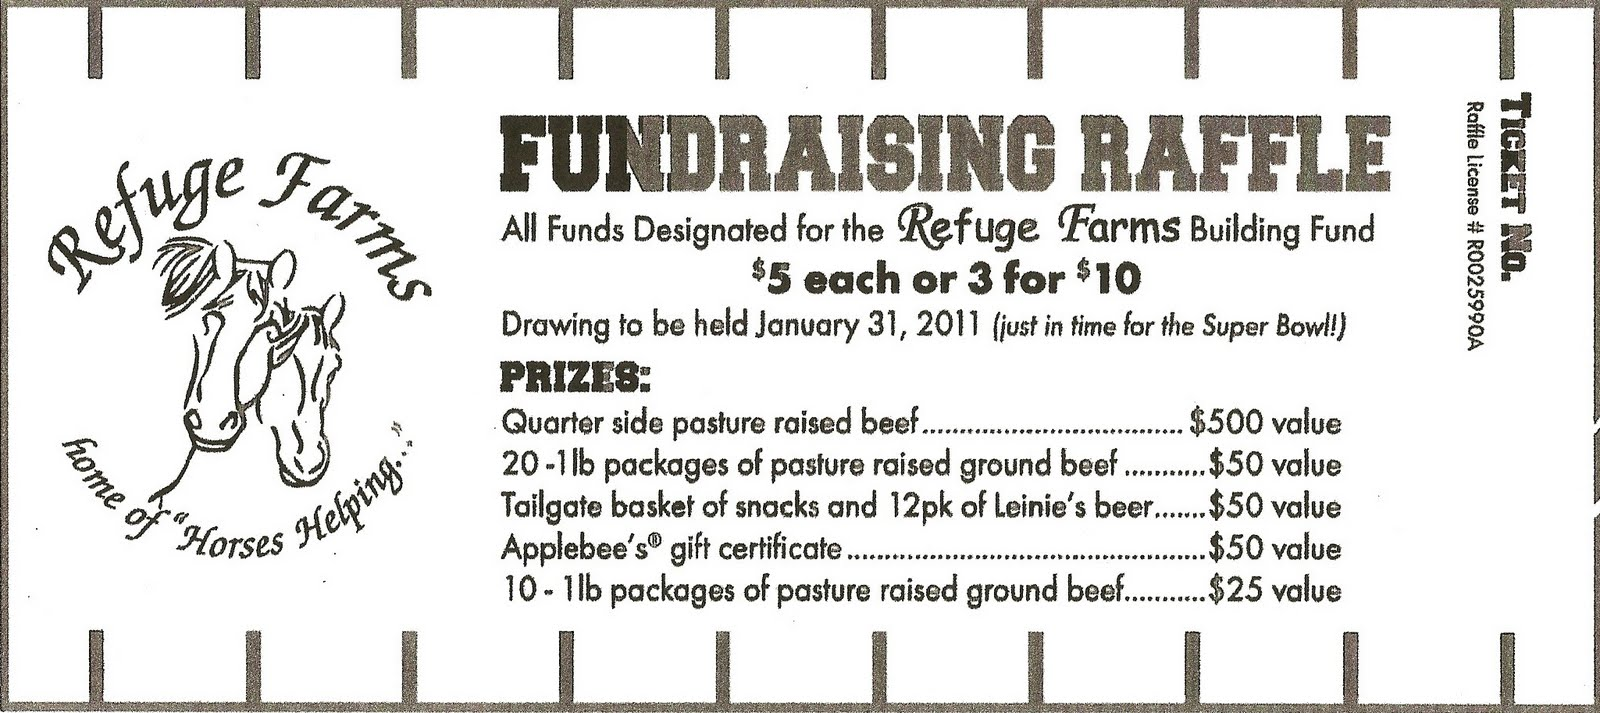 refuge farms refugefarms org tis the season the old barn walls that are literally heading east and south as well as a few shots of a roof that is crumbling into little pieces and raffle tickets